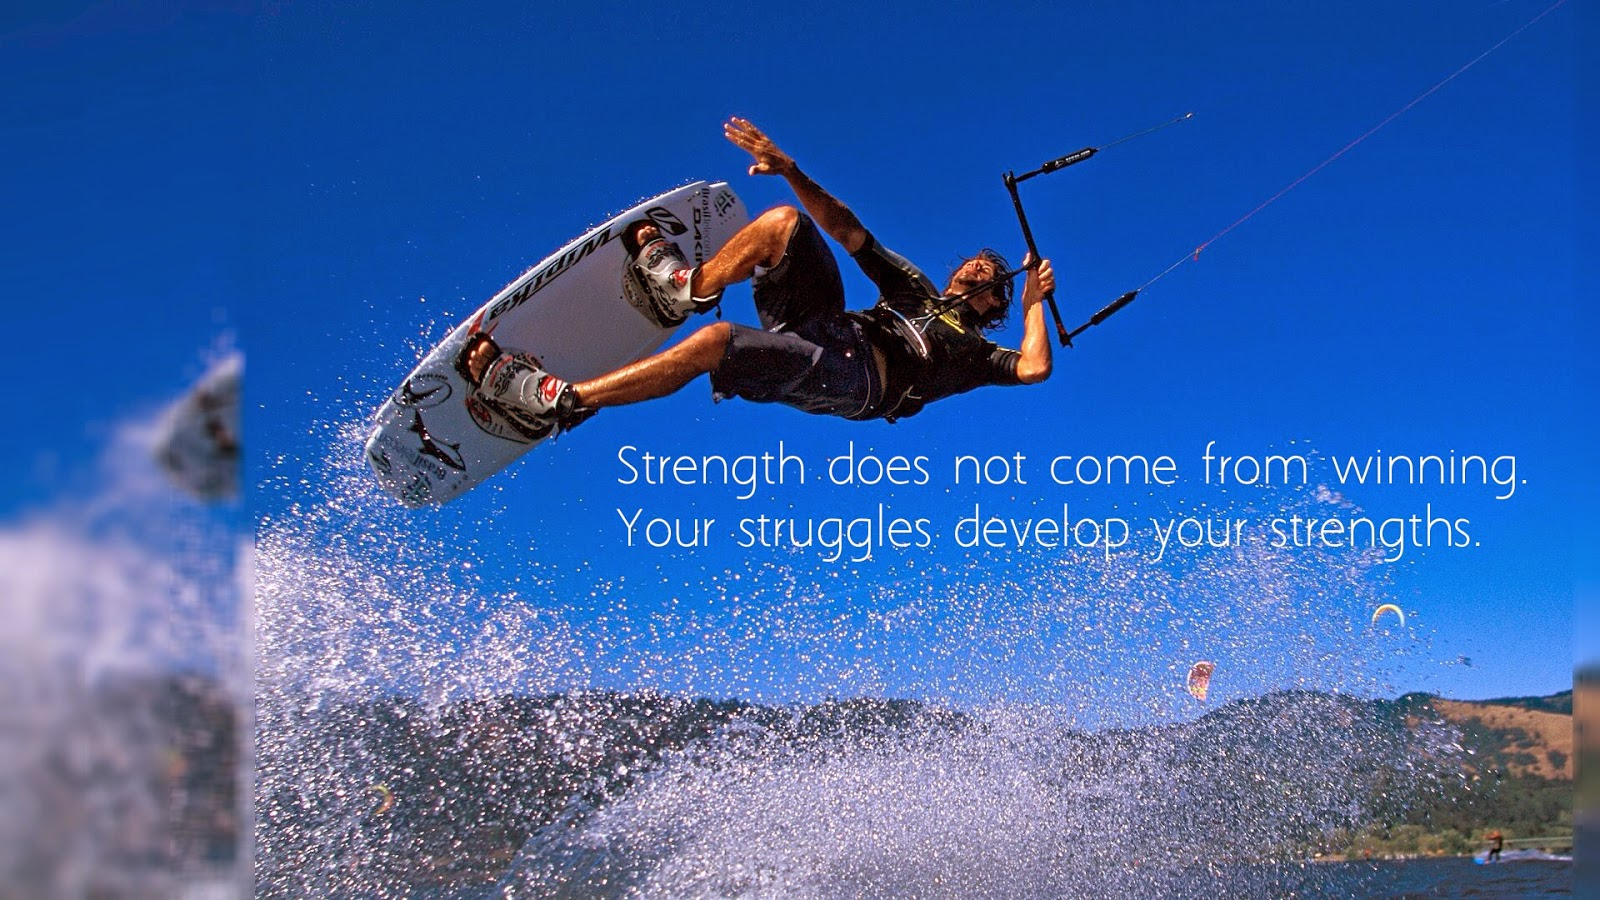 Quotes Wallpapers for the Month of April 2014, Quotes Wallpapers, Motivational Quotes Wallpapers 2014, Monthly Quotes Wallpapers